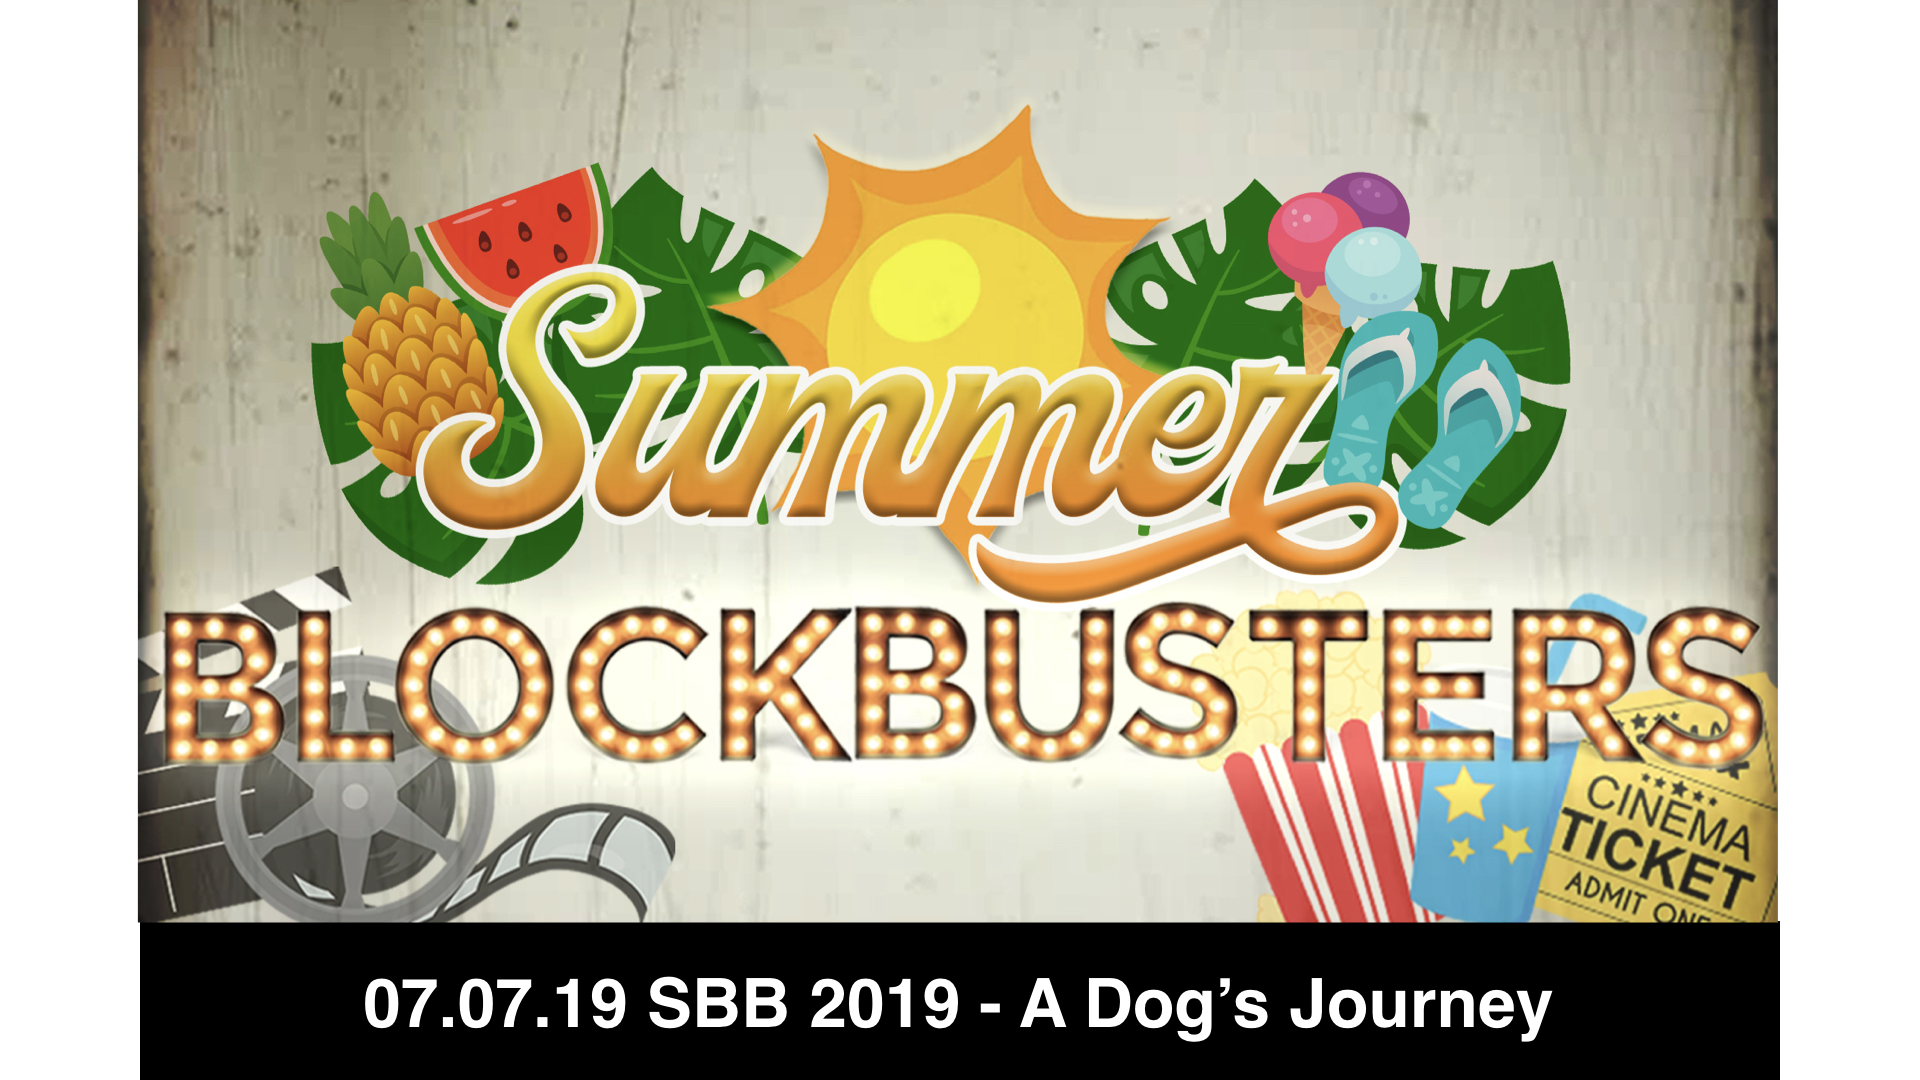 07.07.19 SBB 2019 - A Dog's Journey